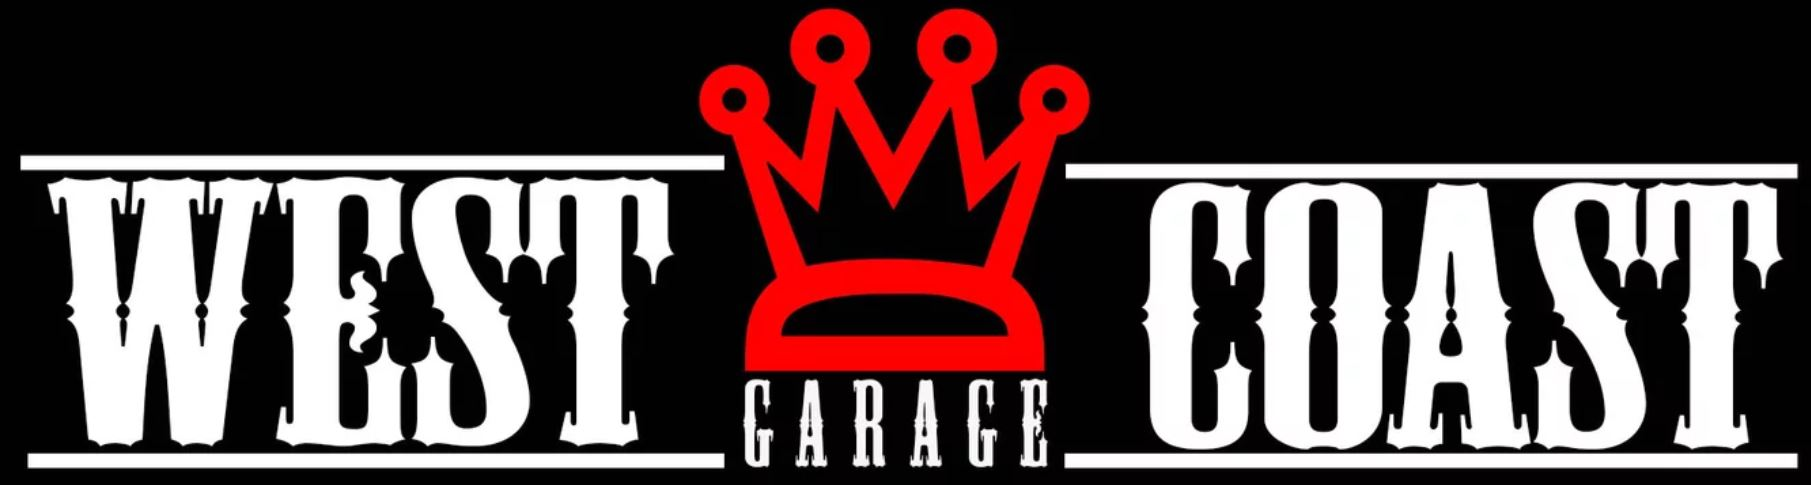 WESTCOAST GARAGE